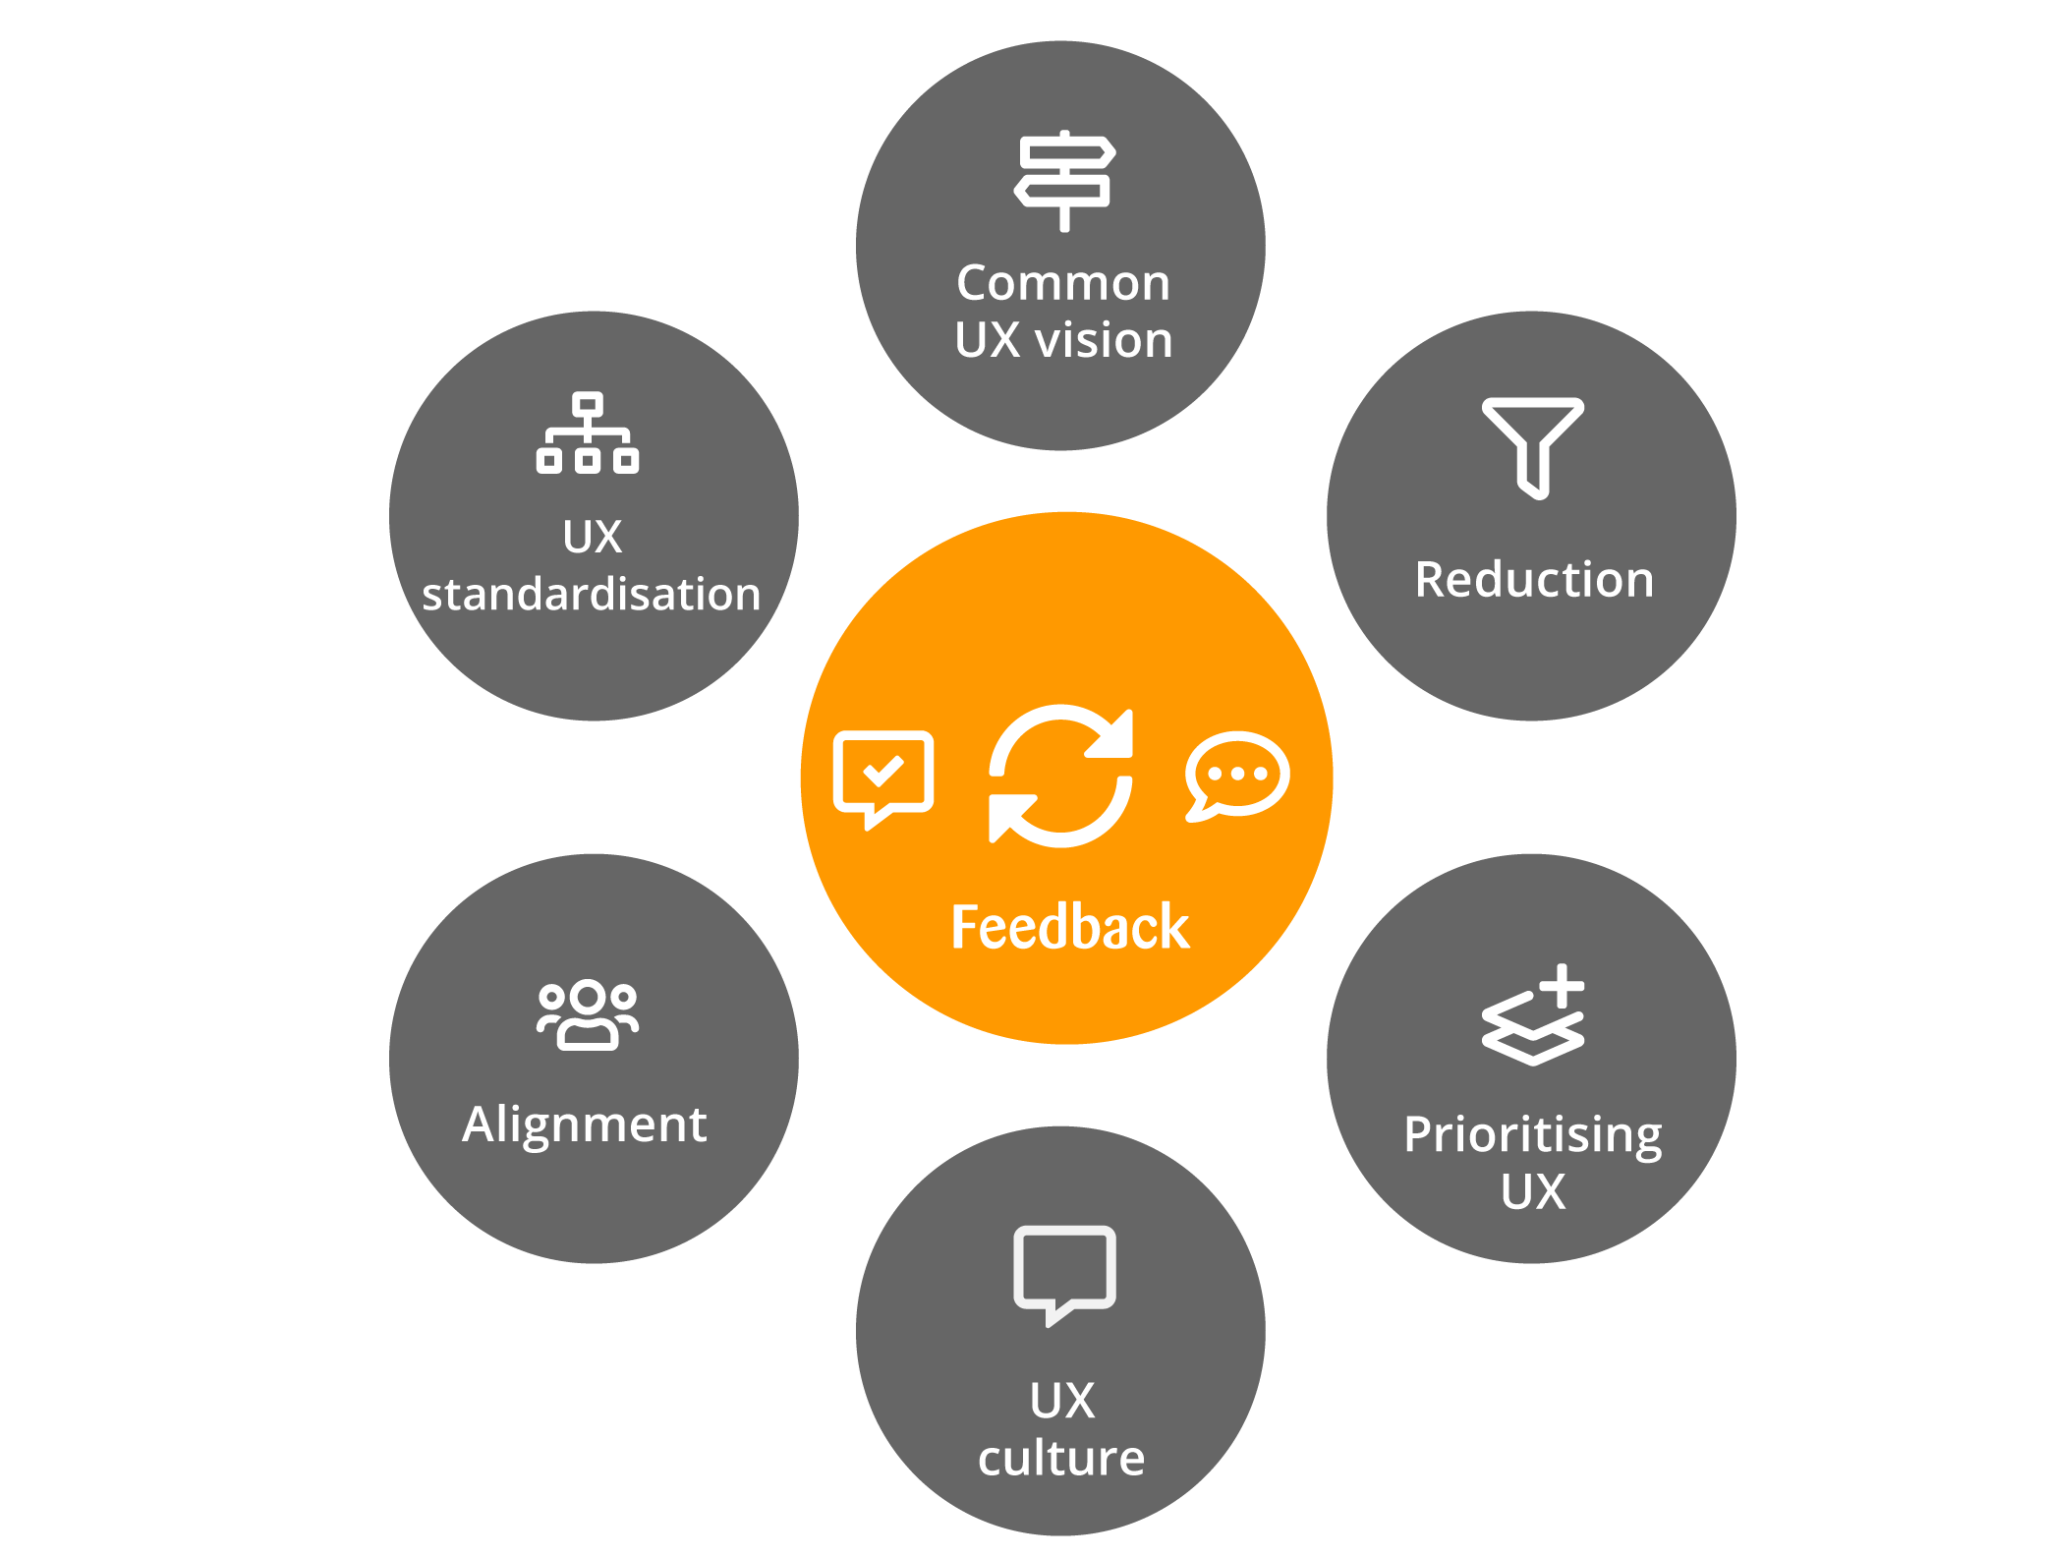 Organisational fields of action to improve user experience